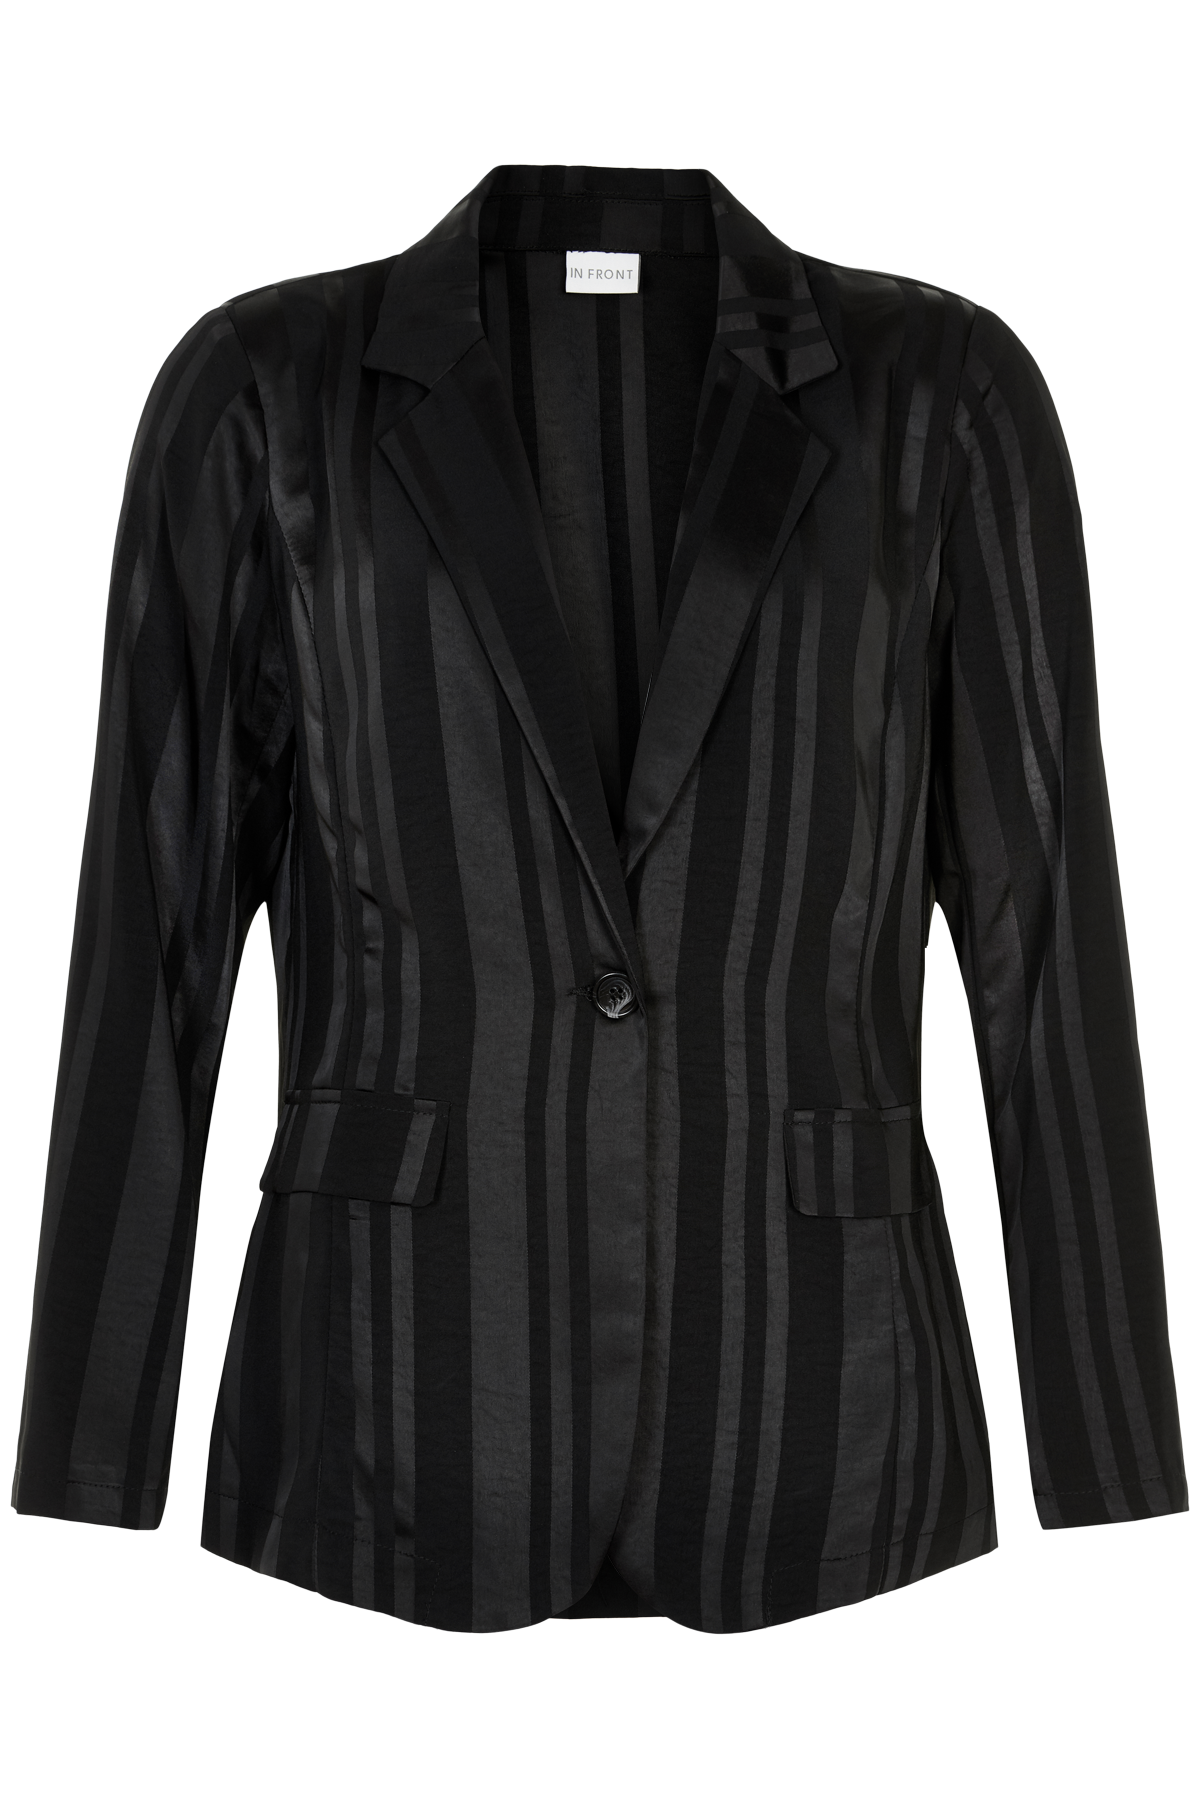 Image of   IN FRONT MIRA BLAZER 13572 (Black 999, XL)